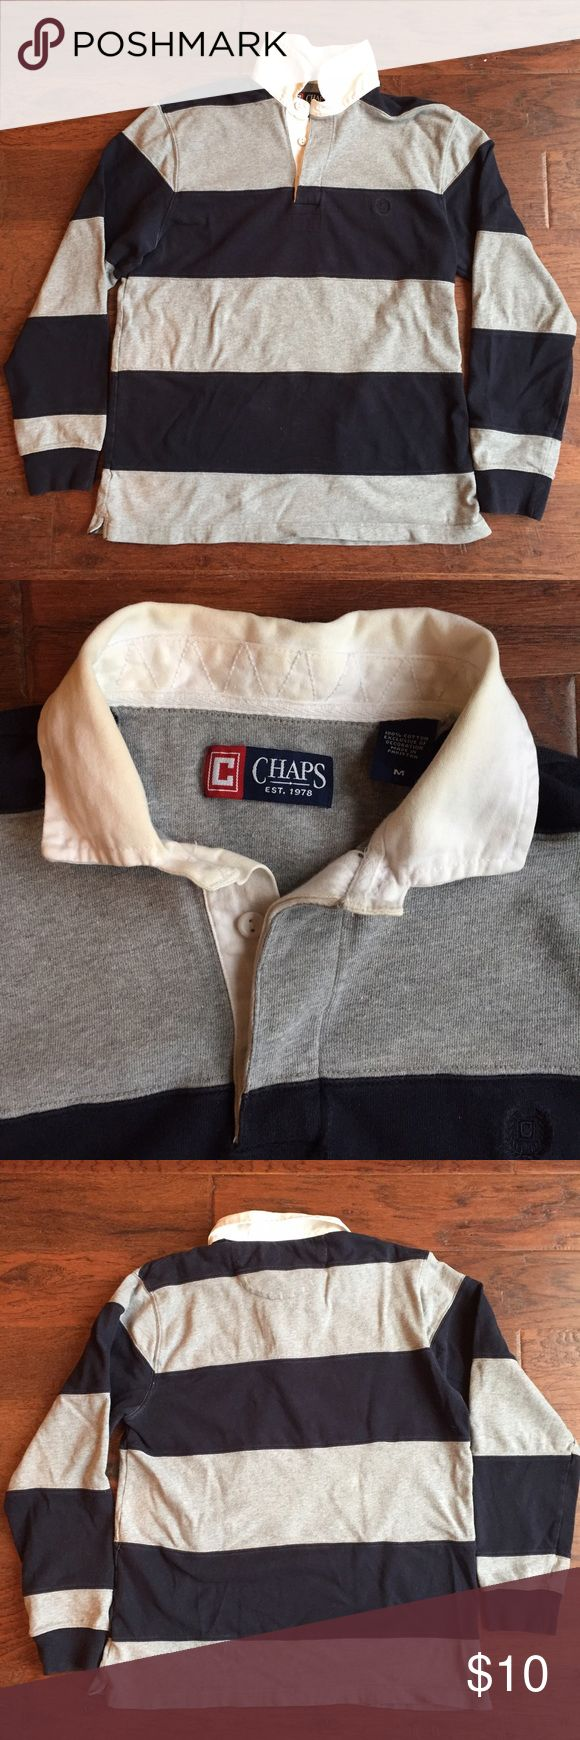 Chaps Rugby Chaps - Blue & Gray Striped Rugby - some staining on collar (pictured) - Size Medium - Smoke Free Home Chaps Shirts Polos